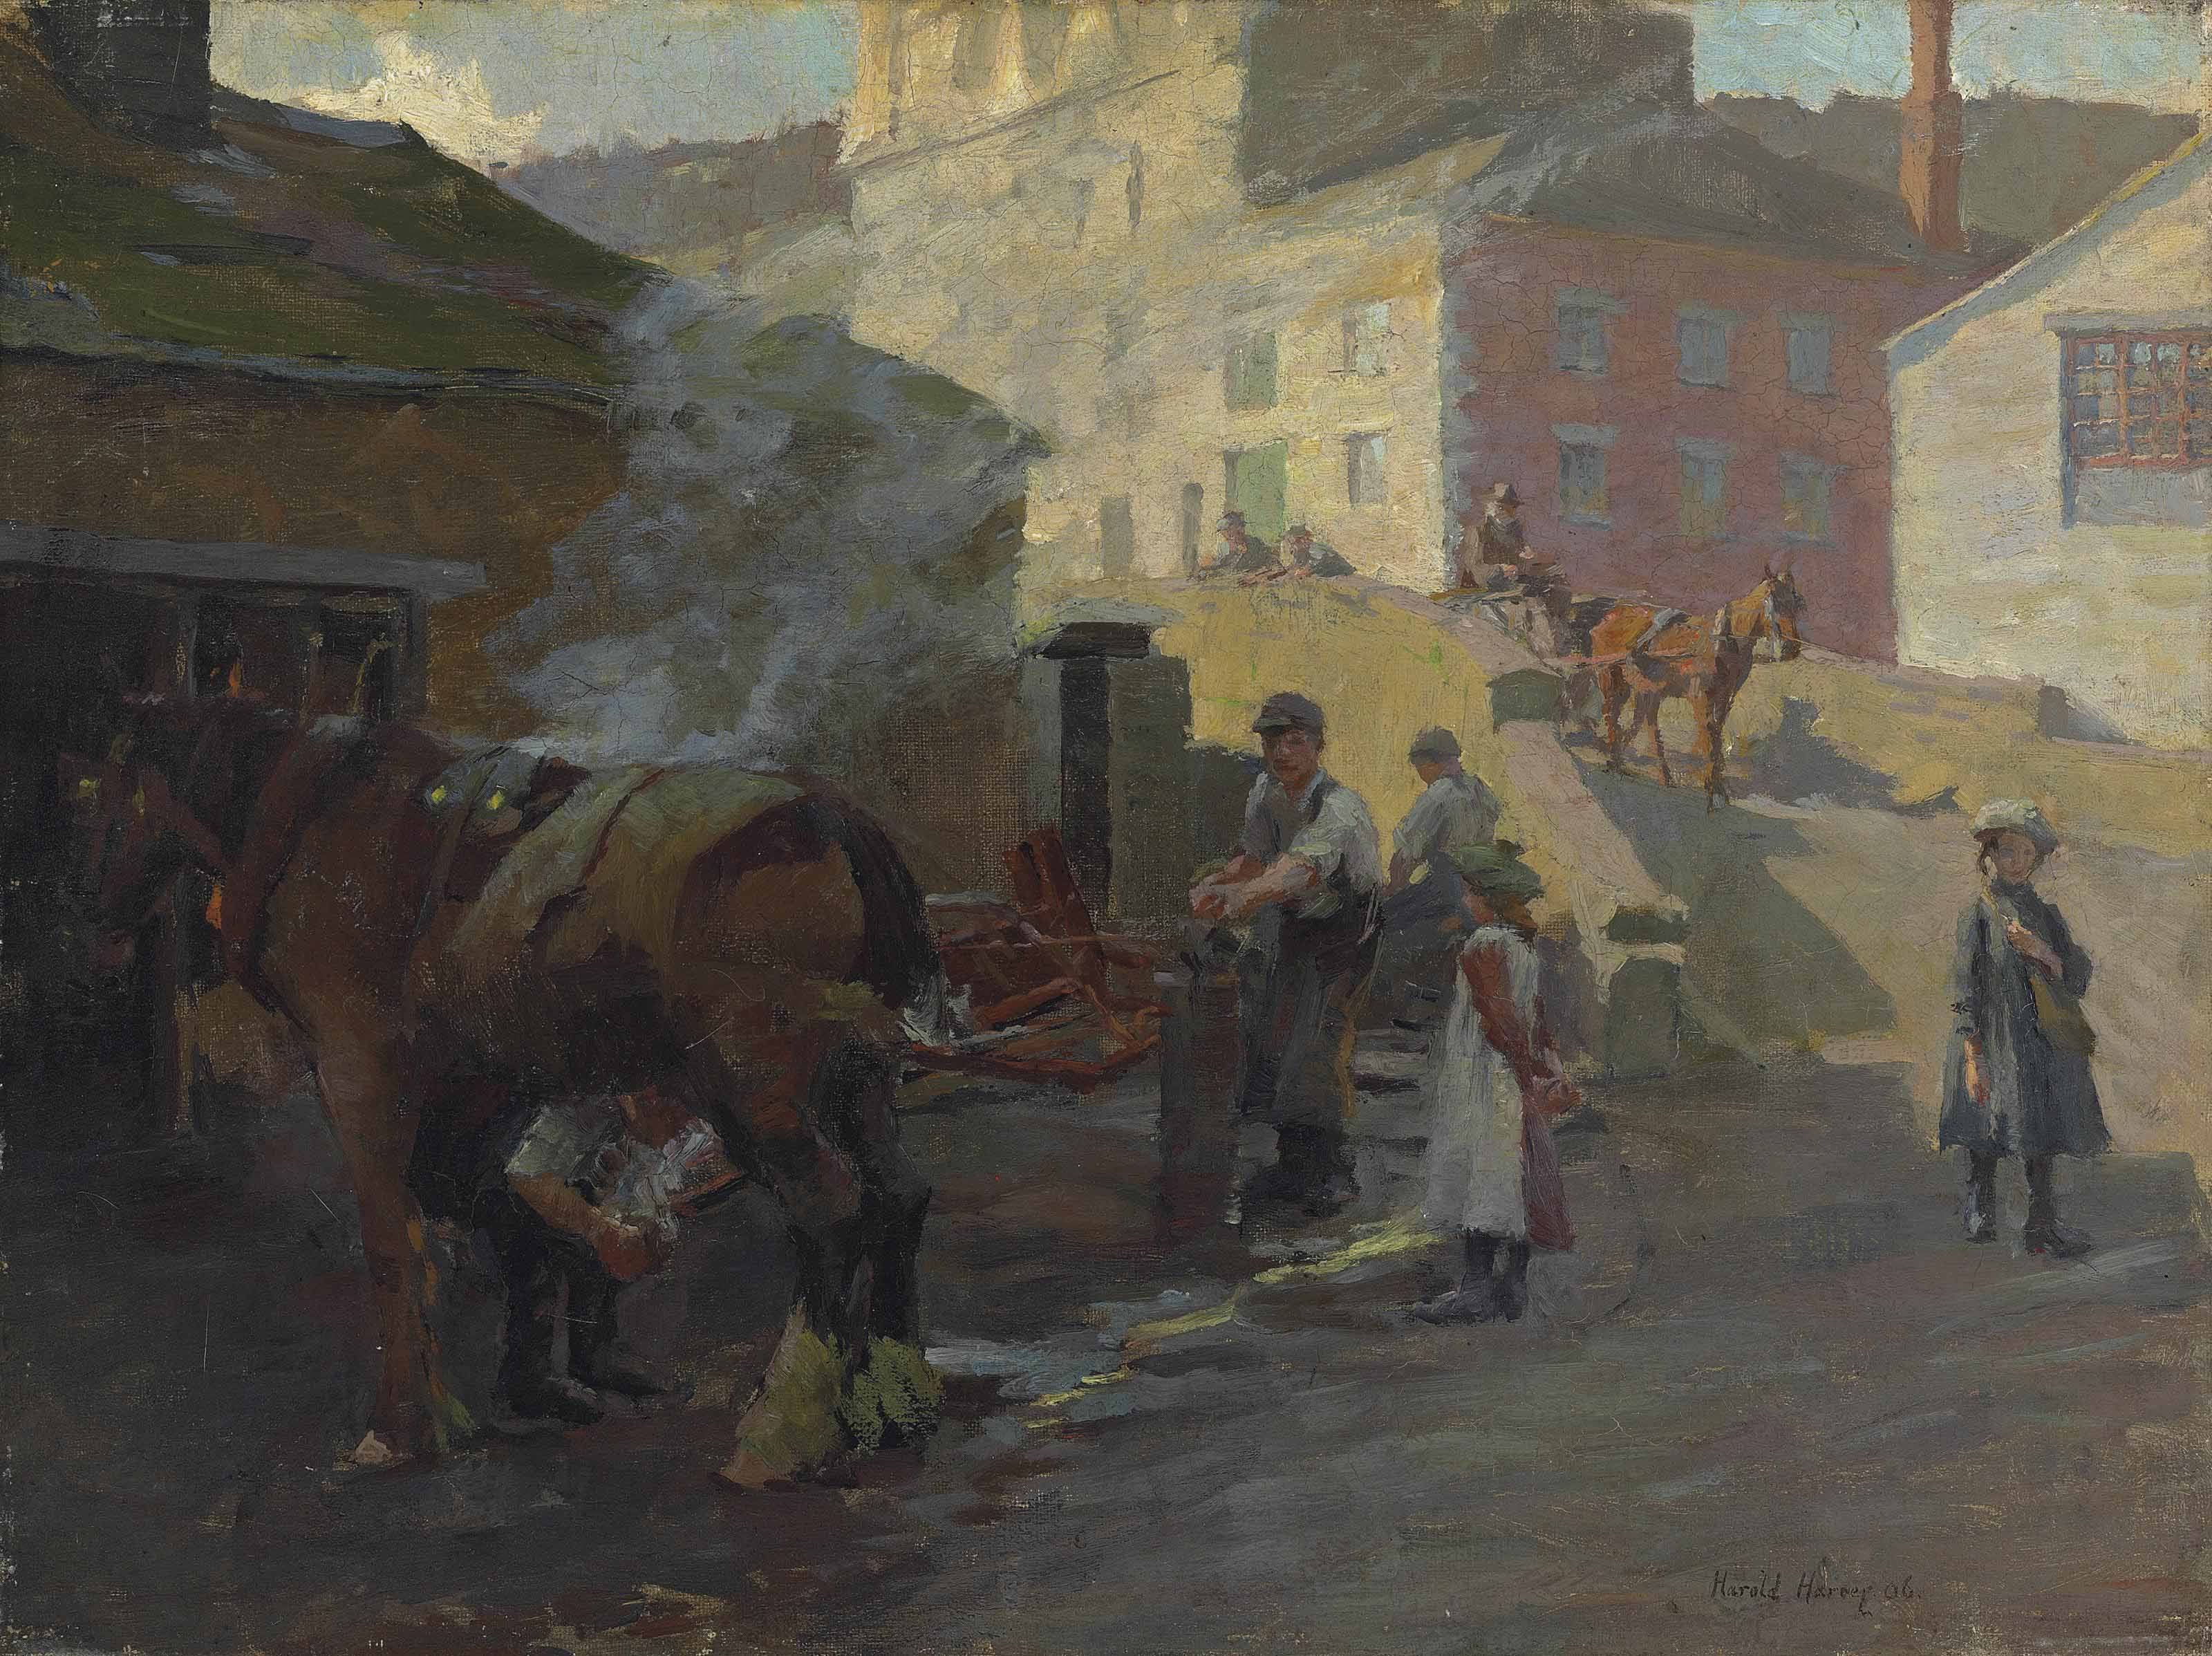 The Blacksmith's Shop by the Old Bridge, Newlyn